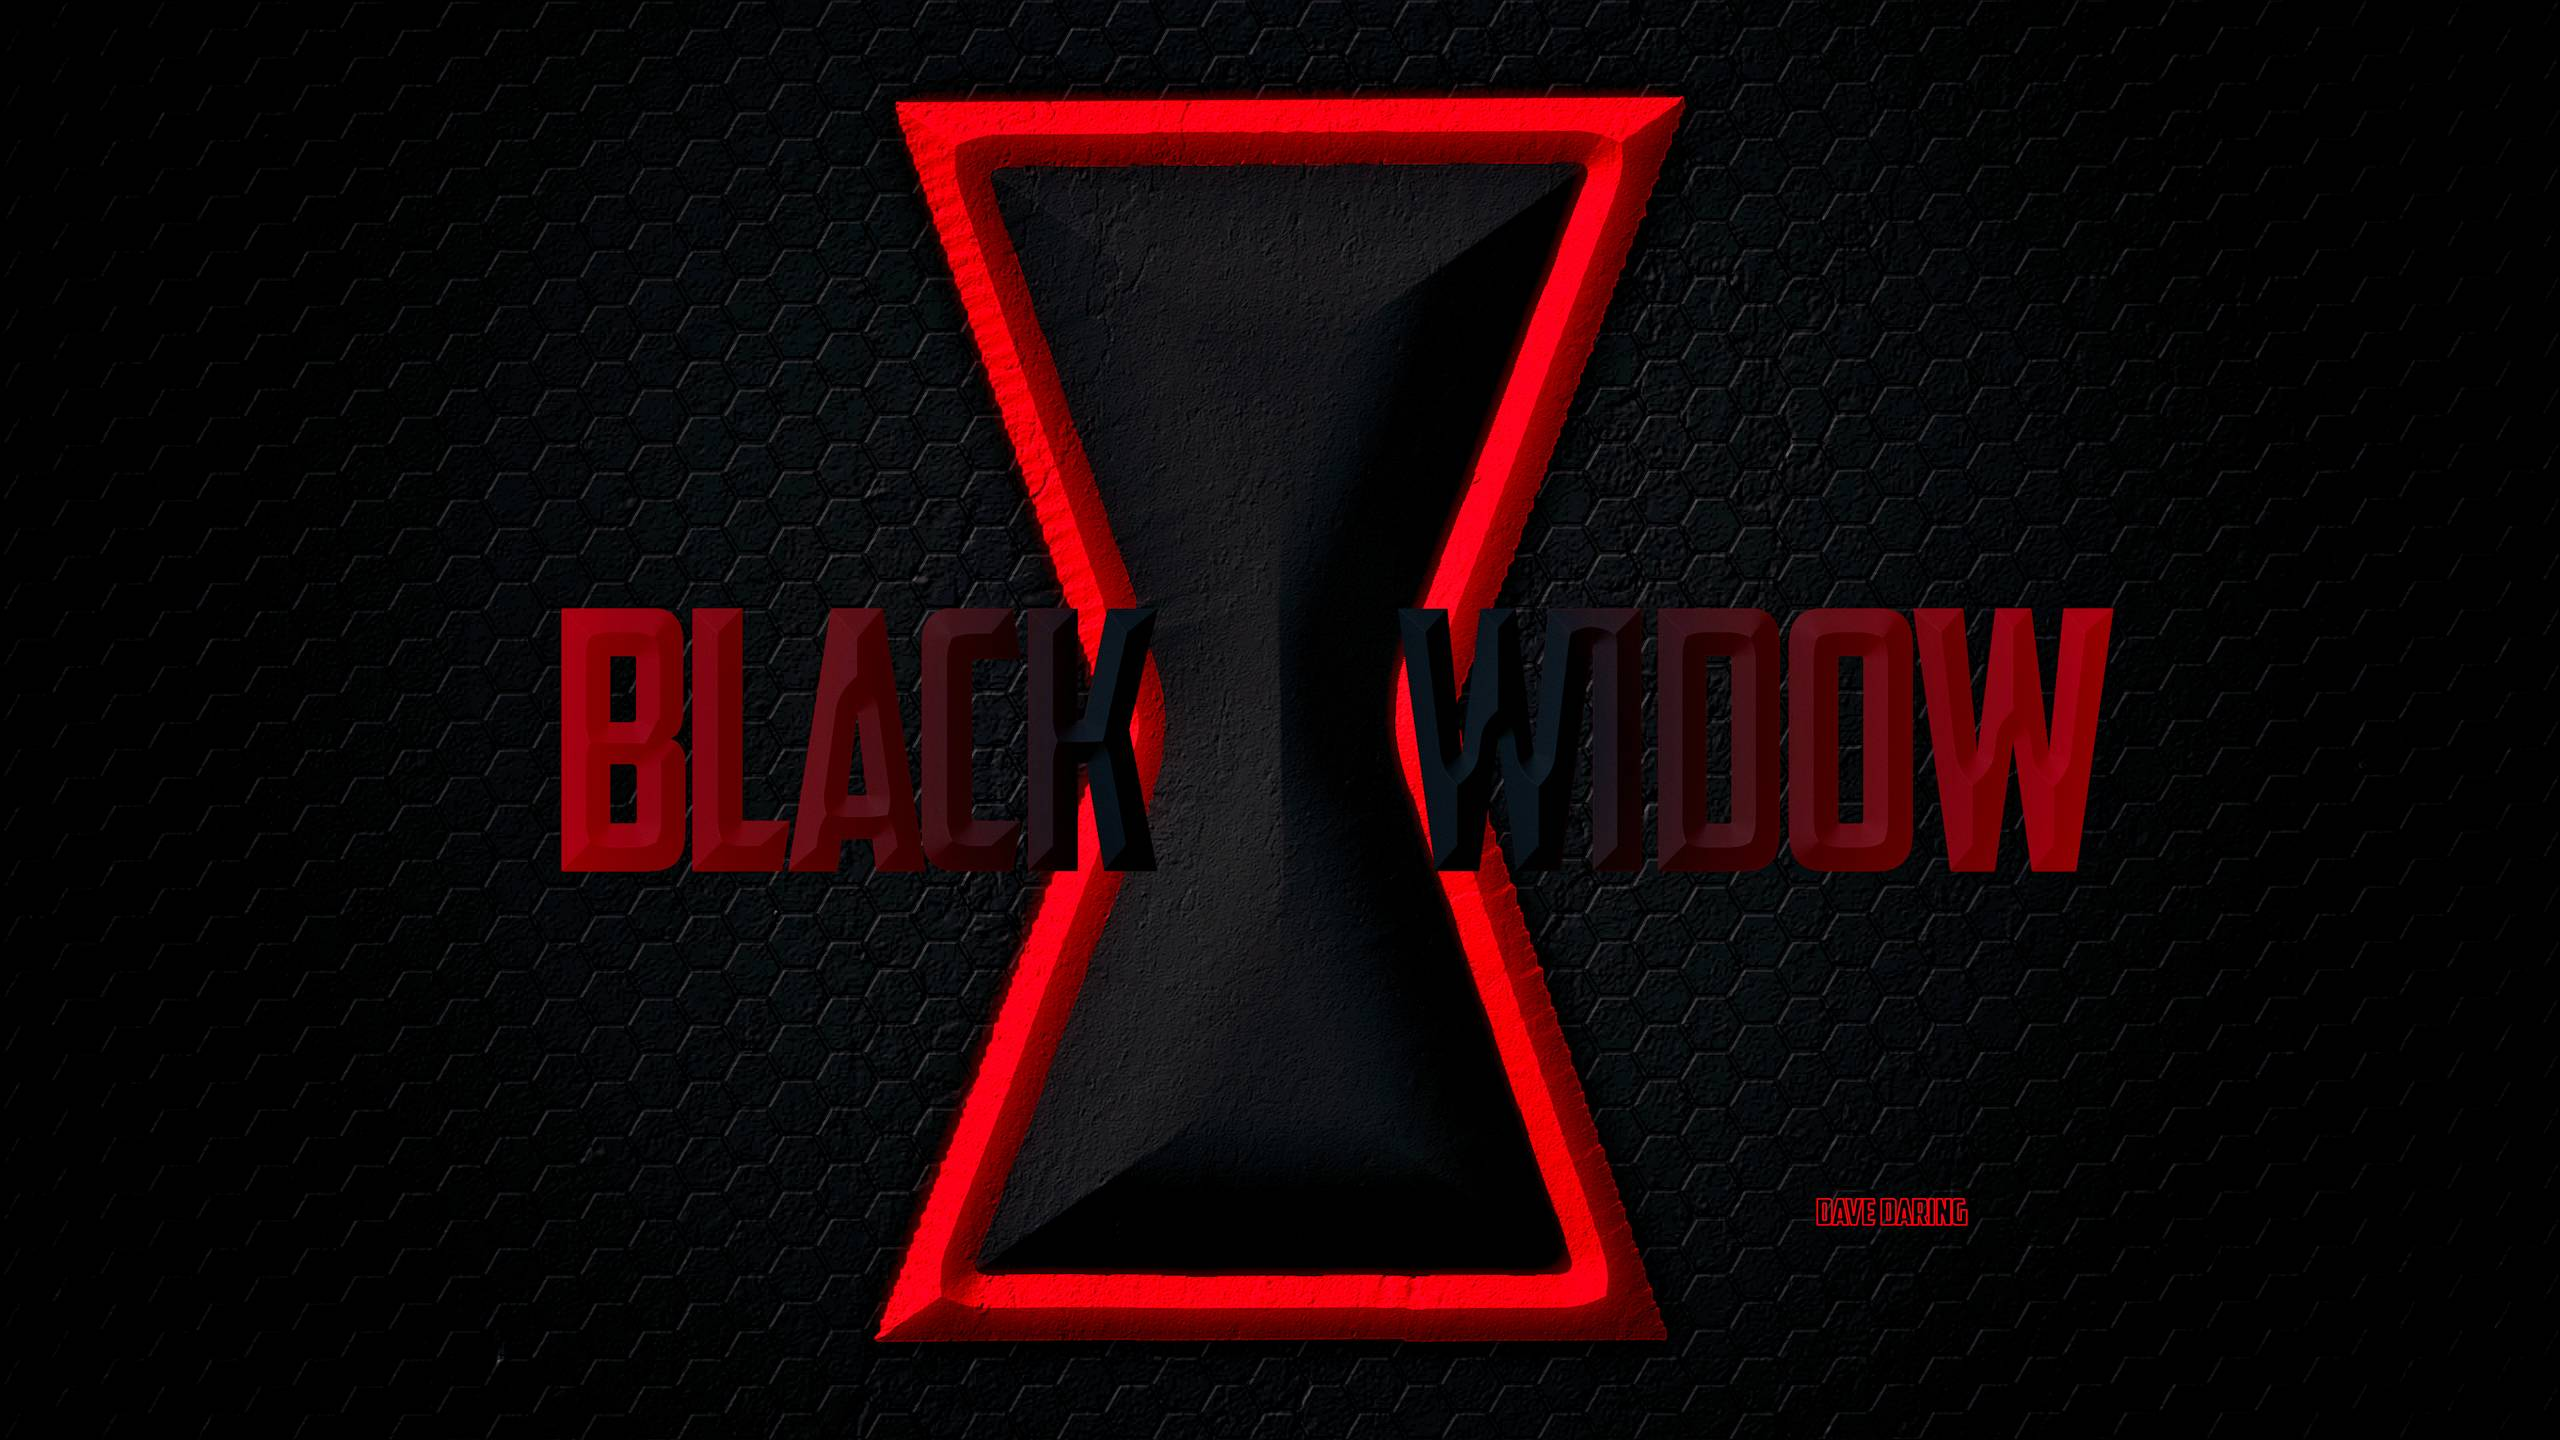 Black widow marvel avengers symbol - photo#3